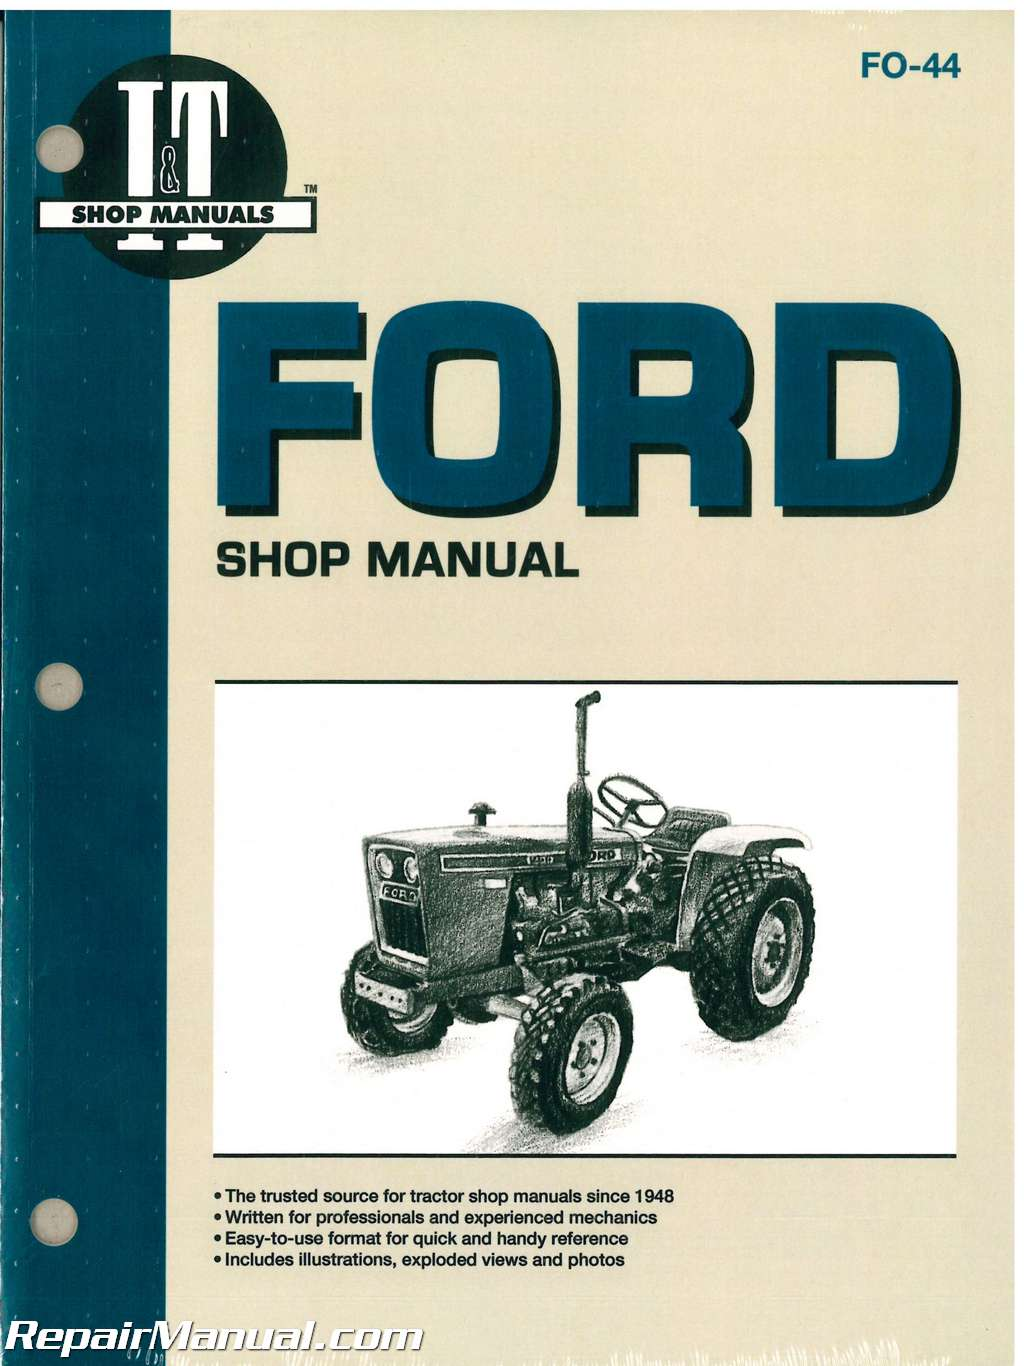 Ford 1910 Tractor Wiring Diagram Ford New Holland 1100 1110 1200 1210 1300 1310 1500 1510